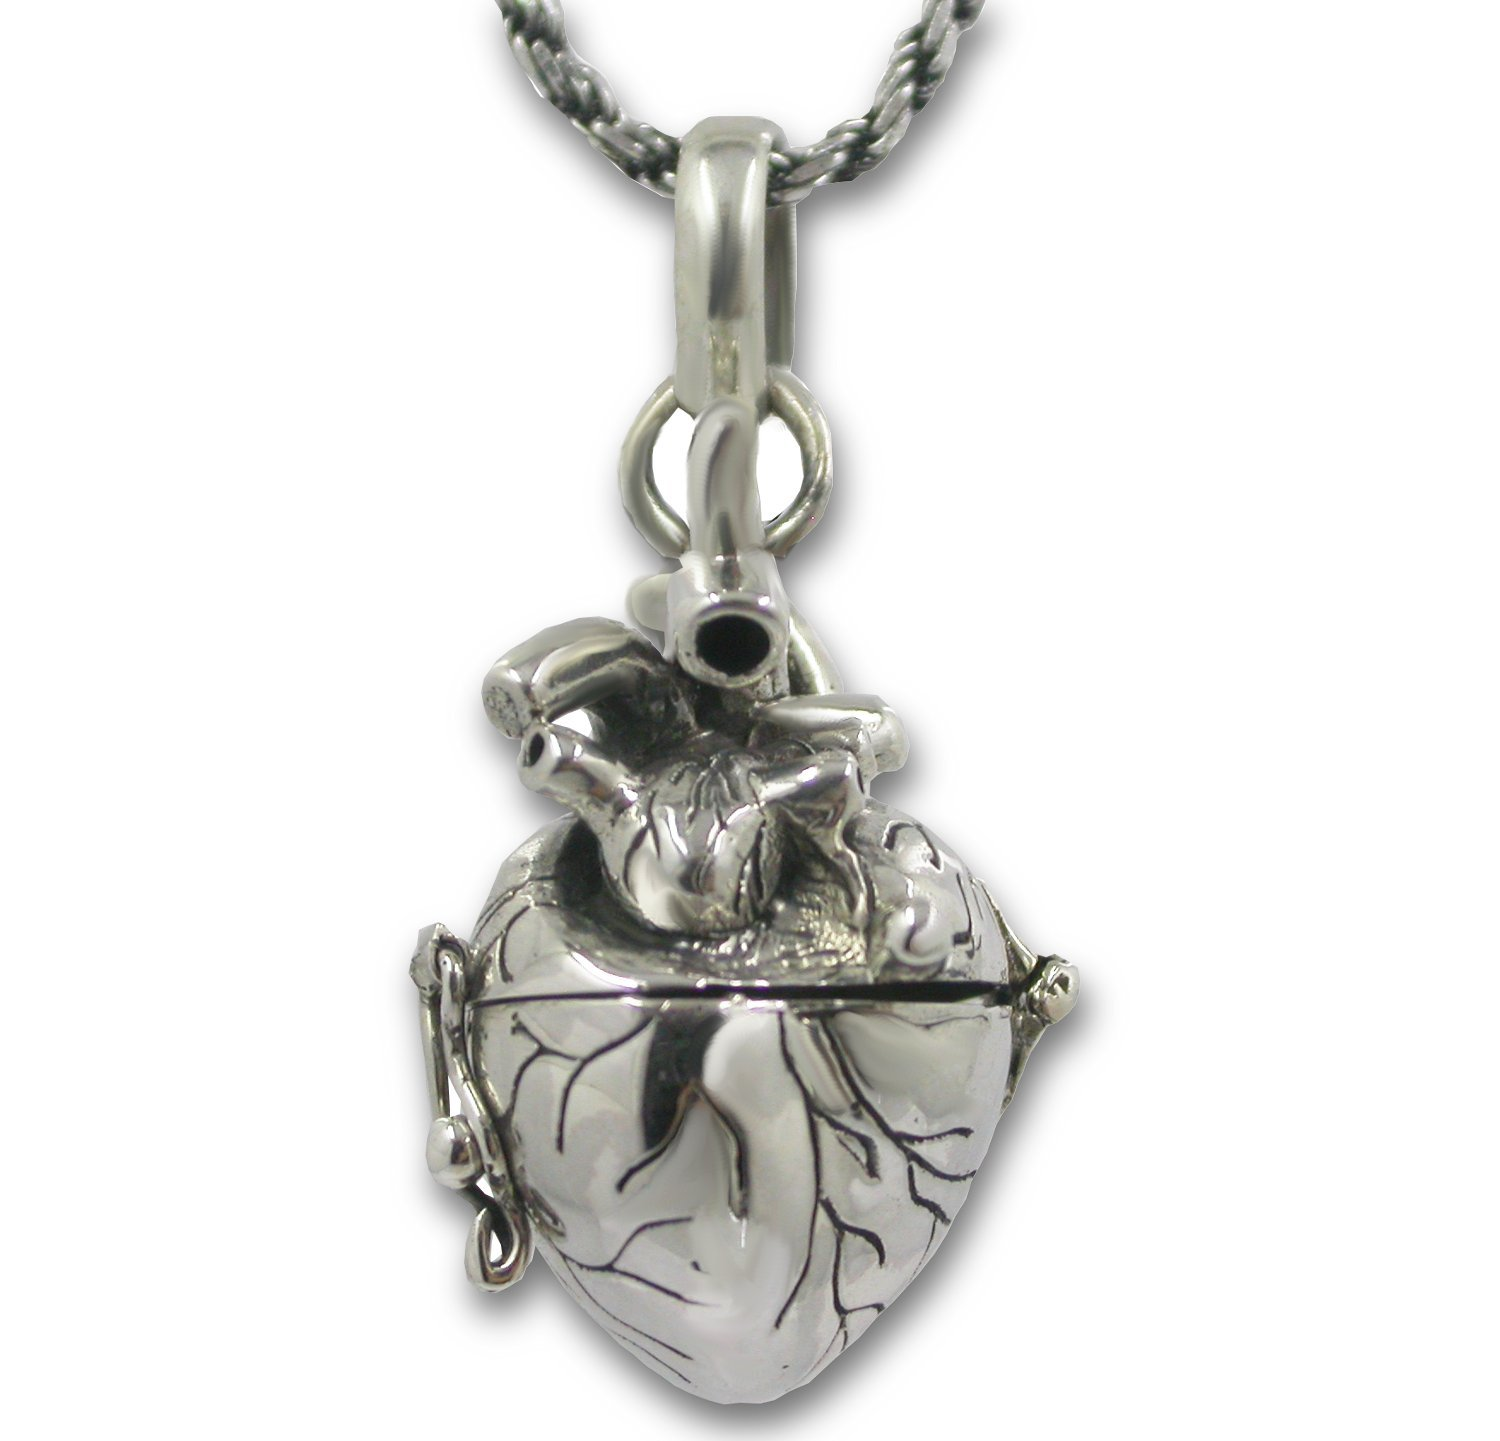 Anatomical Heart Necklace Solid Sterling Silver 3d Antique Finish Message Note Holder or Pill Box Pendant Locket Opens (Heart with 24'' Solid Silver Rope Chain)